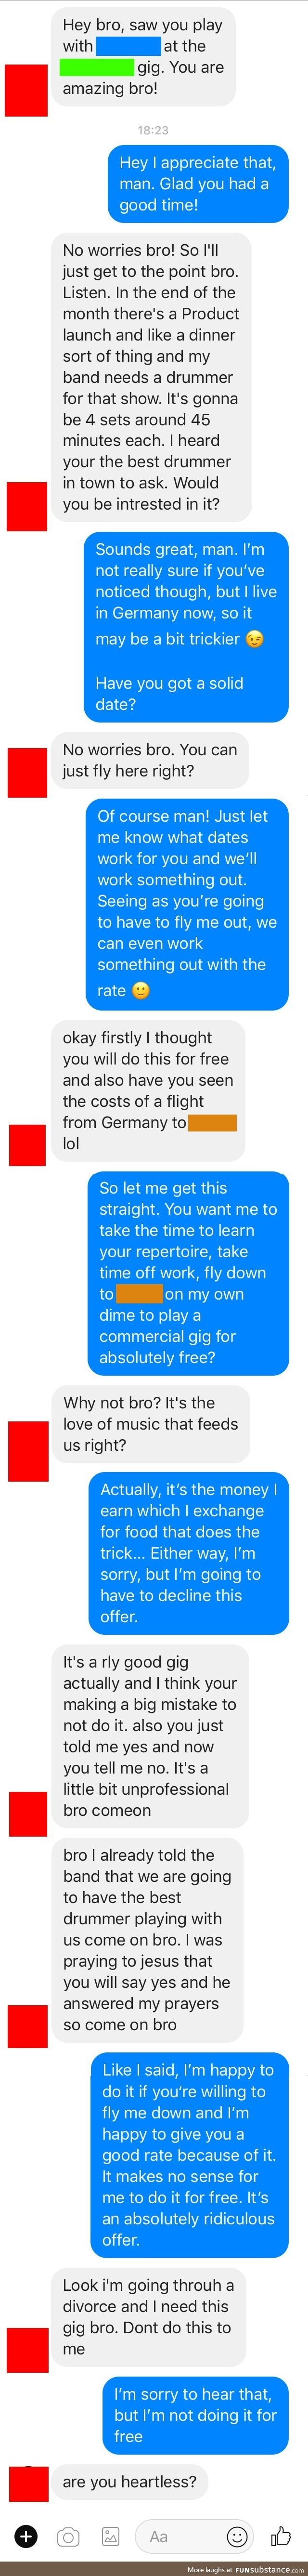 It's the love of music that feeds us, right?